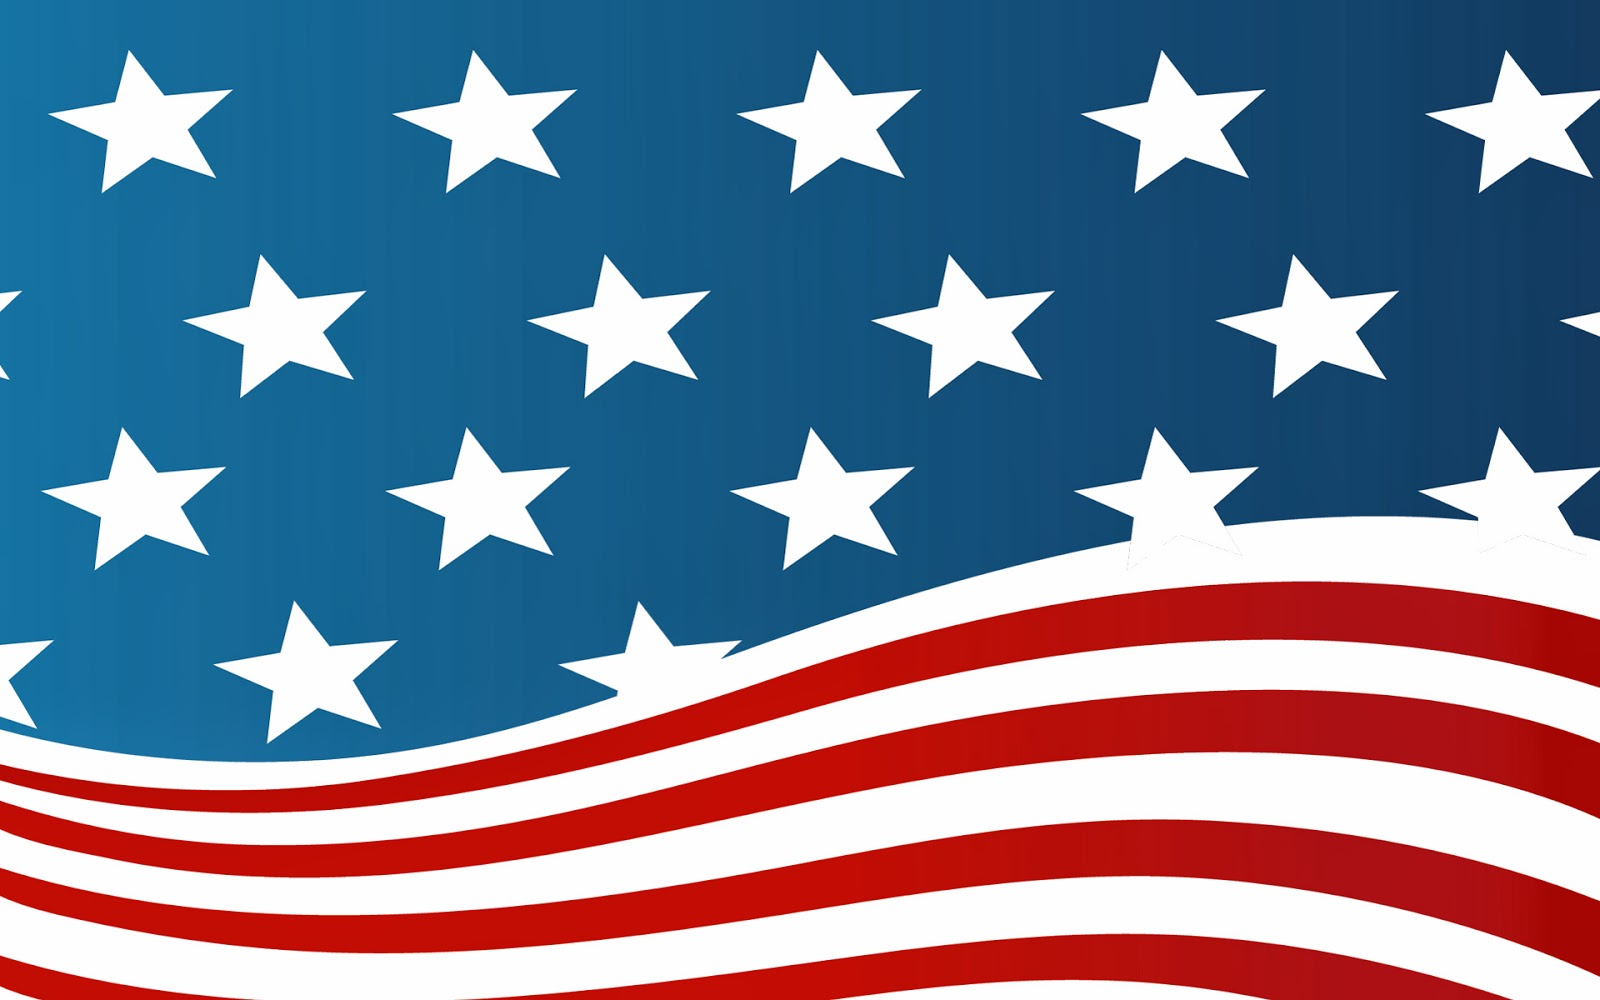 desktop hd images with american flag